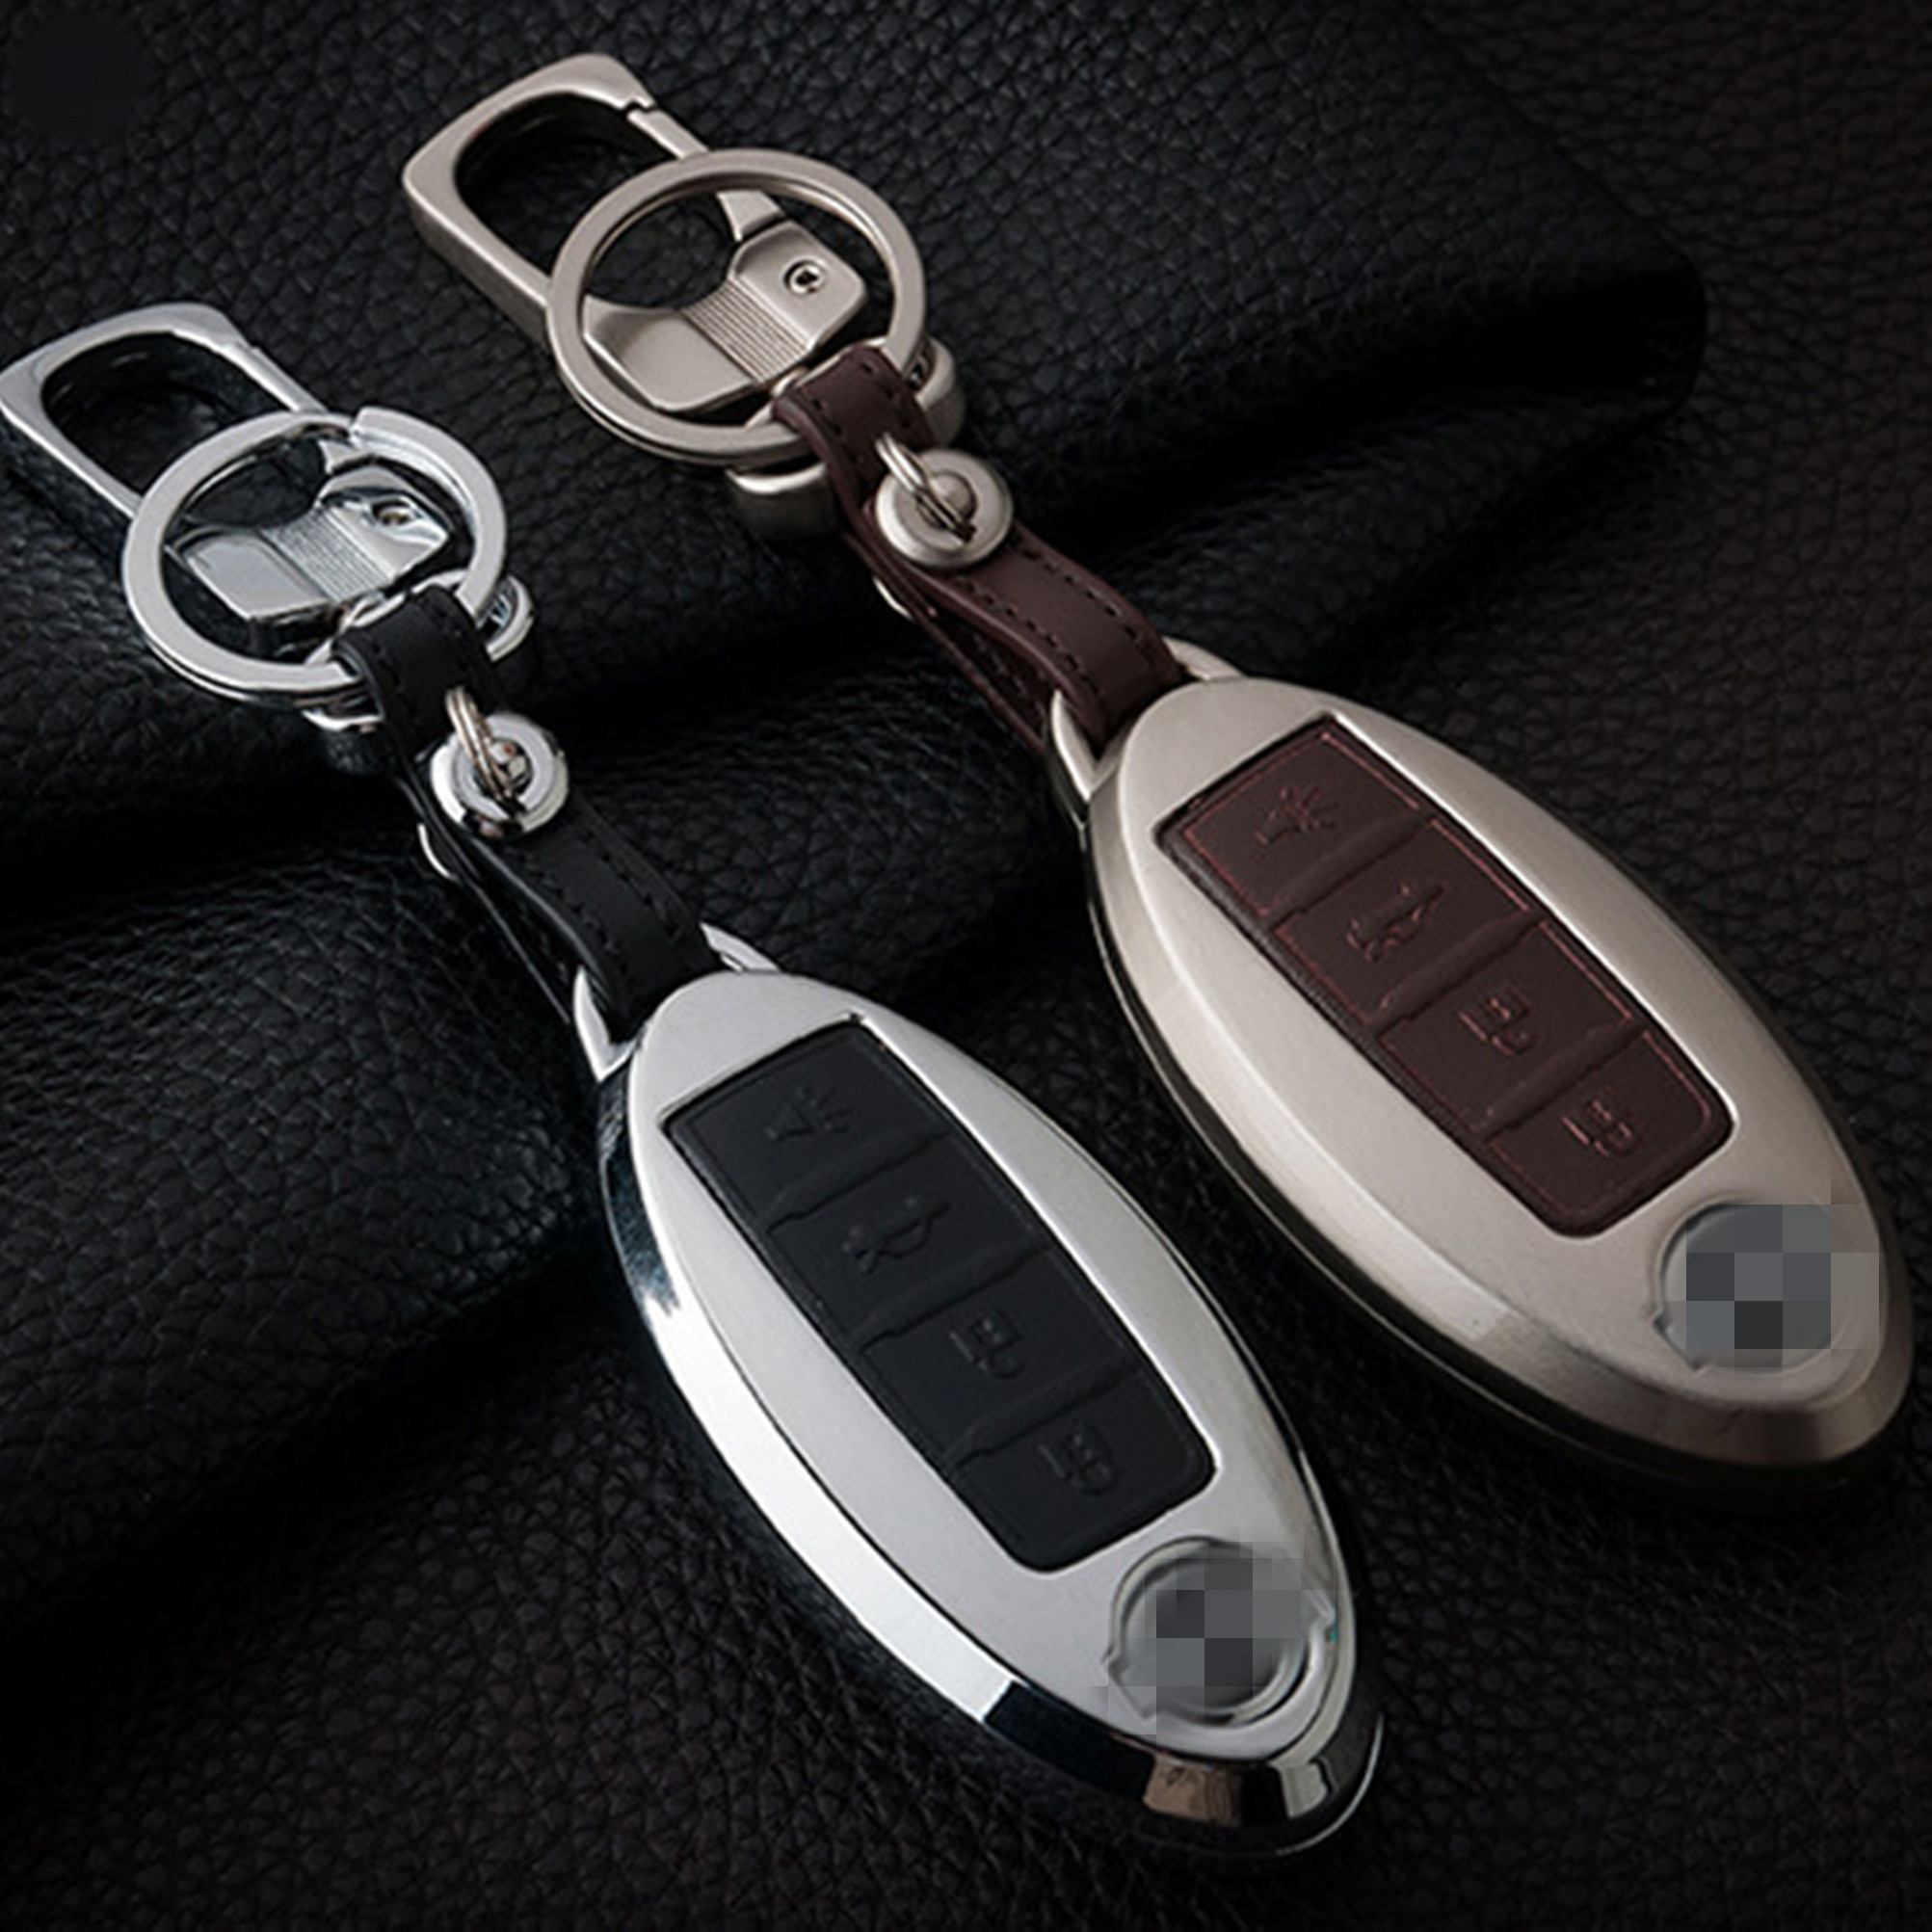 Hot Sale Zinc Alloy Key Cover Holder Fob For Nissan Gt R Armada 370z 2011 Altima Fuse Box Menu Cube Juke Maxima Murano Pathfinder Quest Rogue Sentra Versa